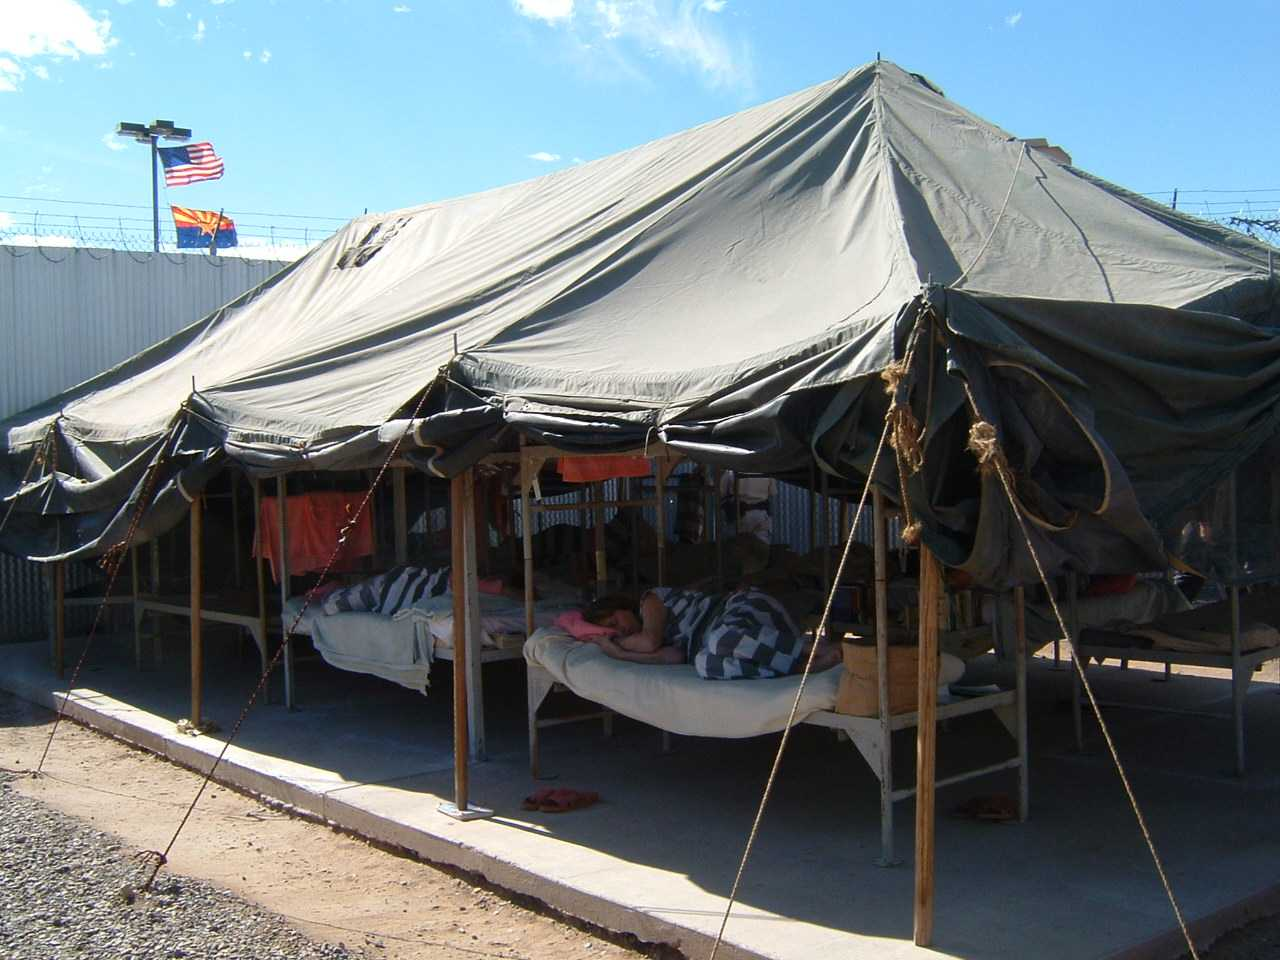 Tent City Jail & A Peopleu0027s Guide to Maricopa County: Tent City Jail